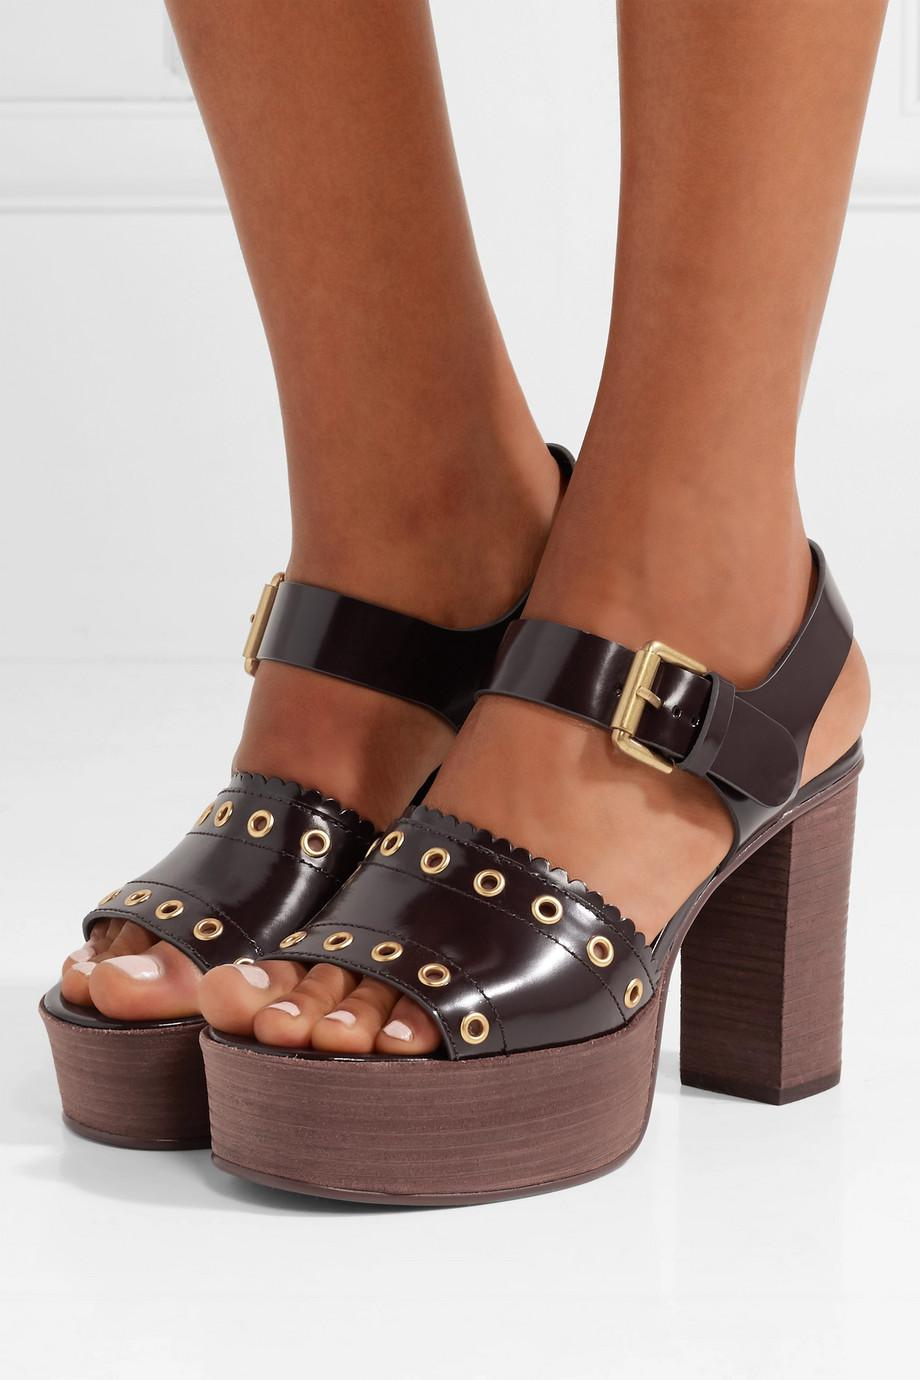 Nora Eyelet-embellished Glossed-leather Platform Sandals - Dark brown See By Chloé AIthH29